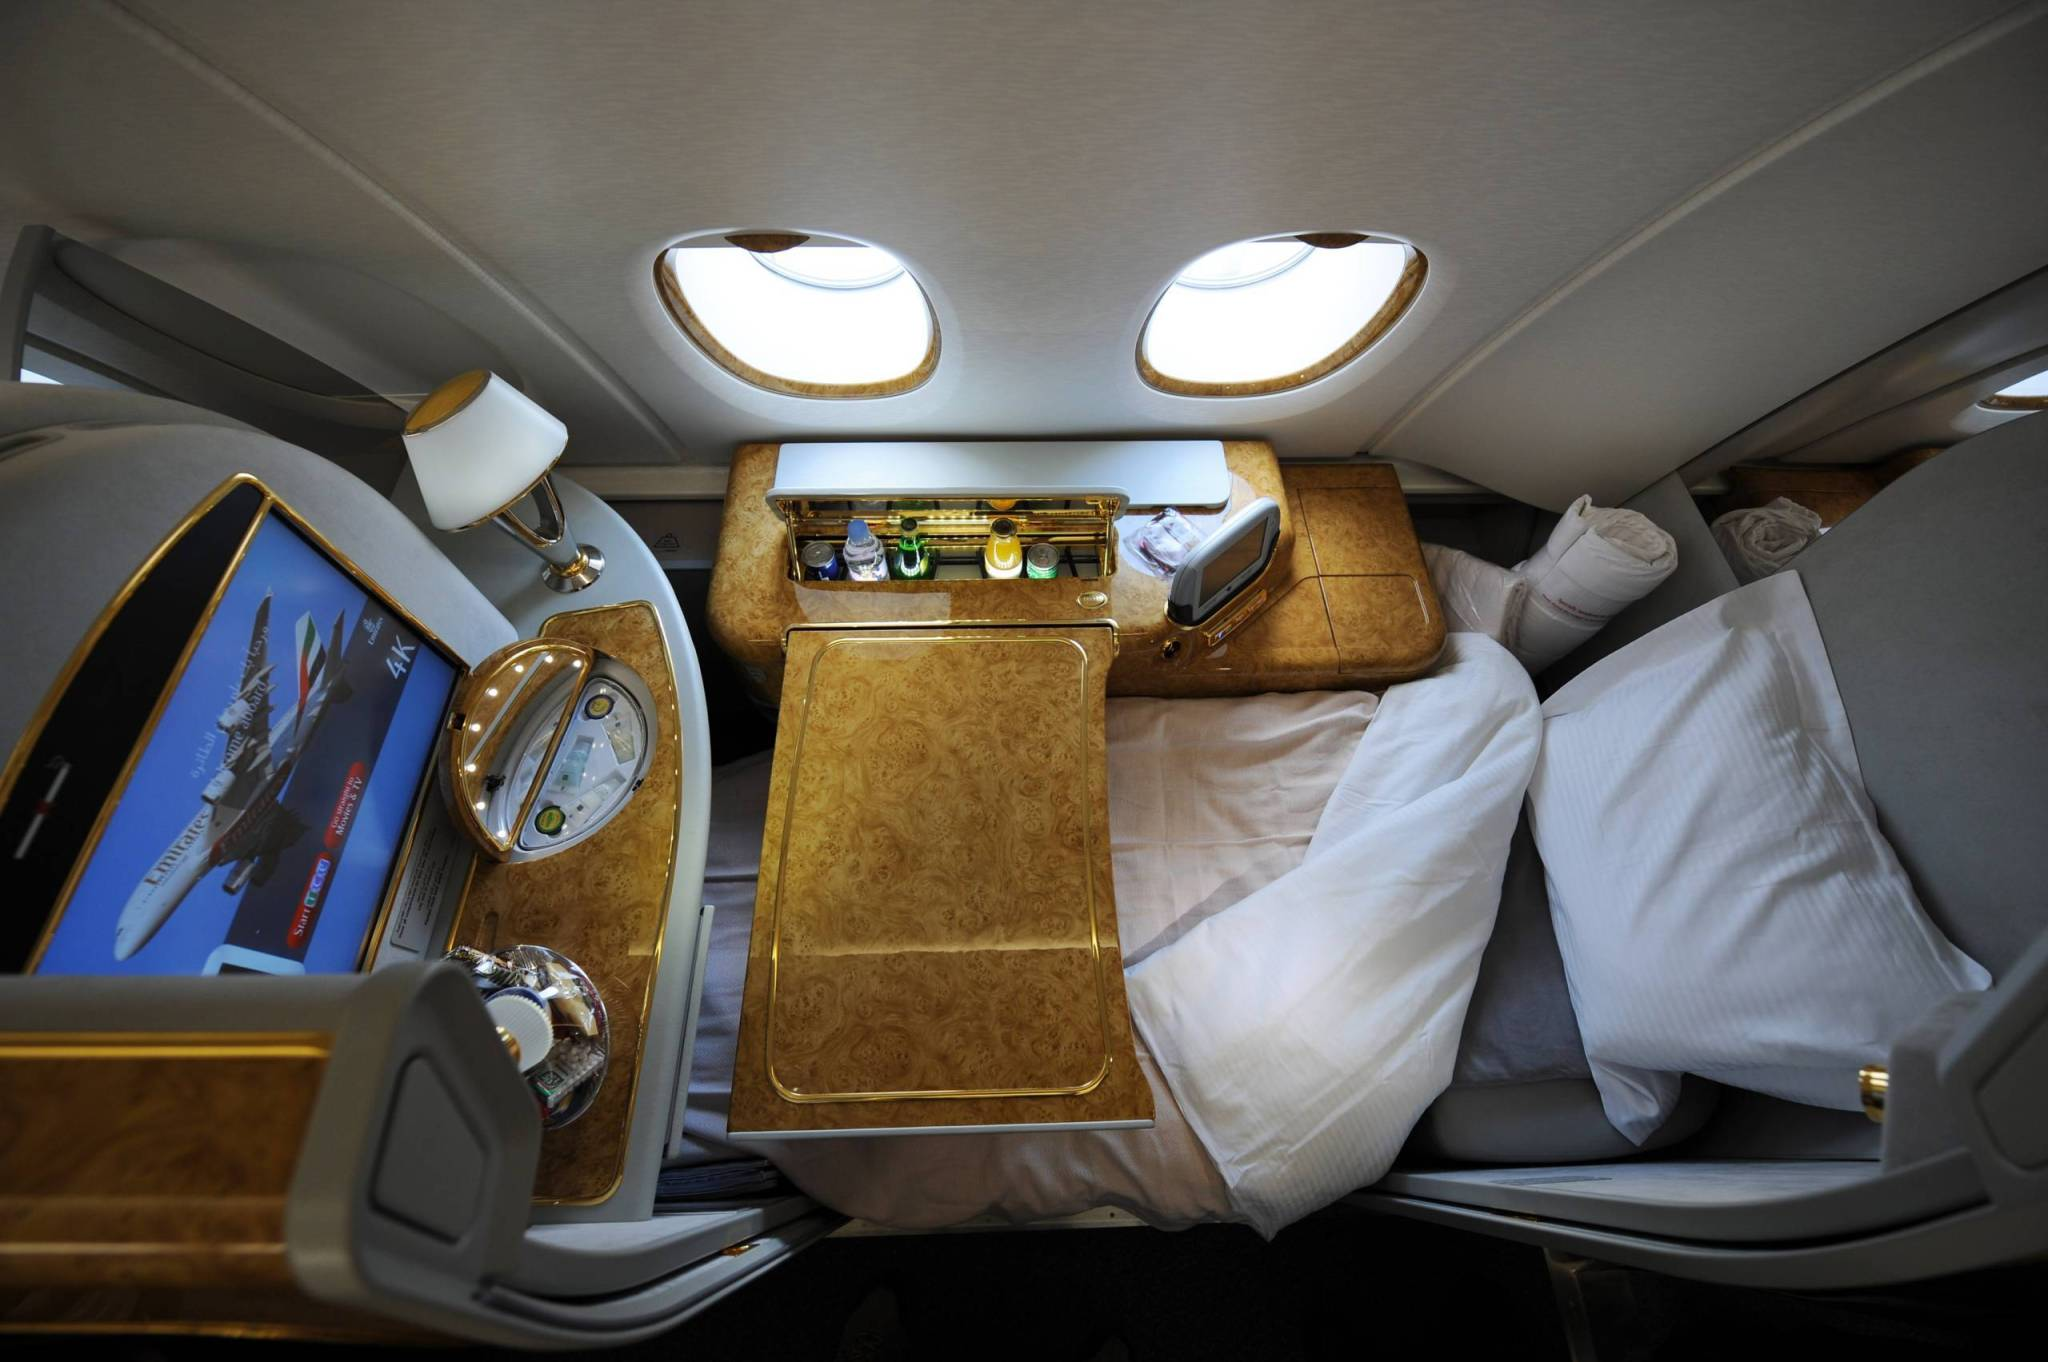 A first class seat configured for sleeping aboard an Emirates Airlines A380 on August 1, 2008. Emirates becomes the first commercial Airbus A380 jet to land in the United States at JFK International Airport in New York. The A380 is the world